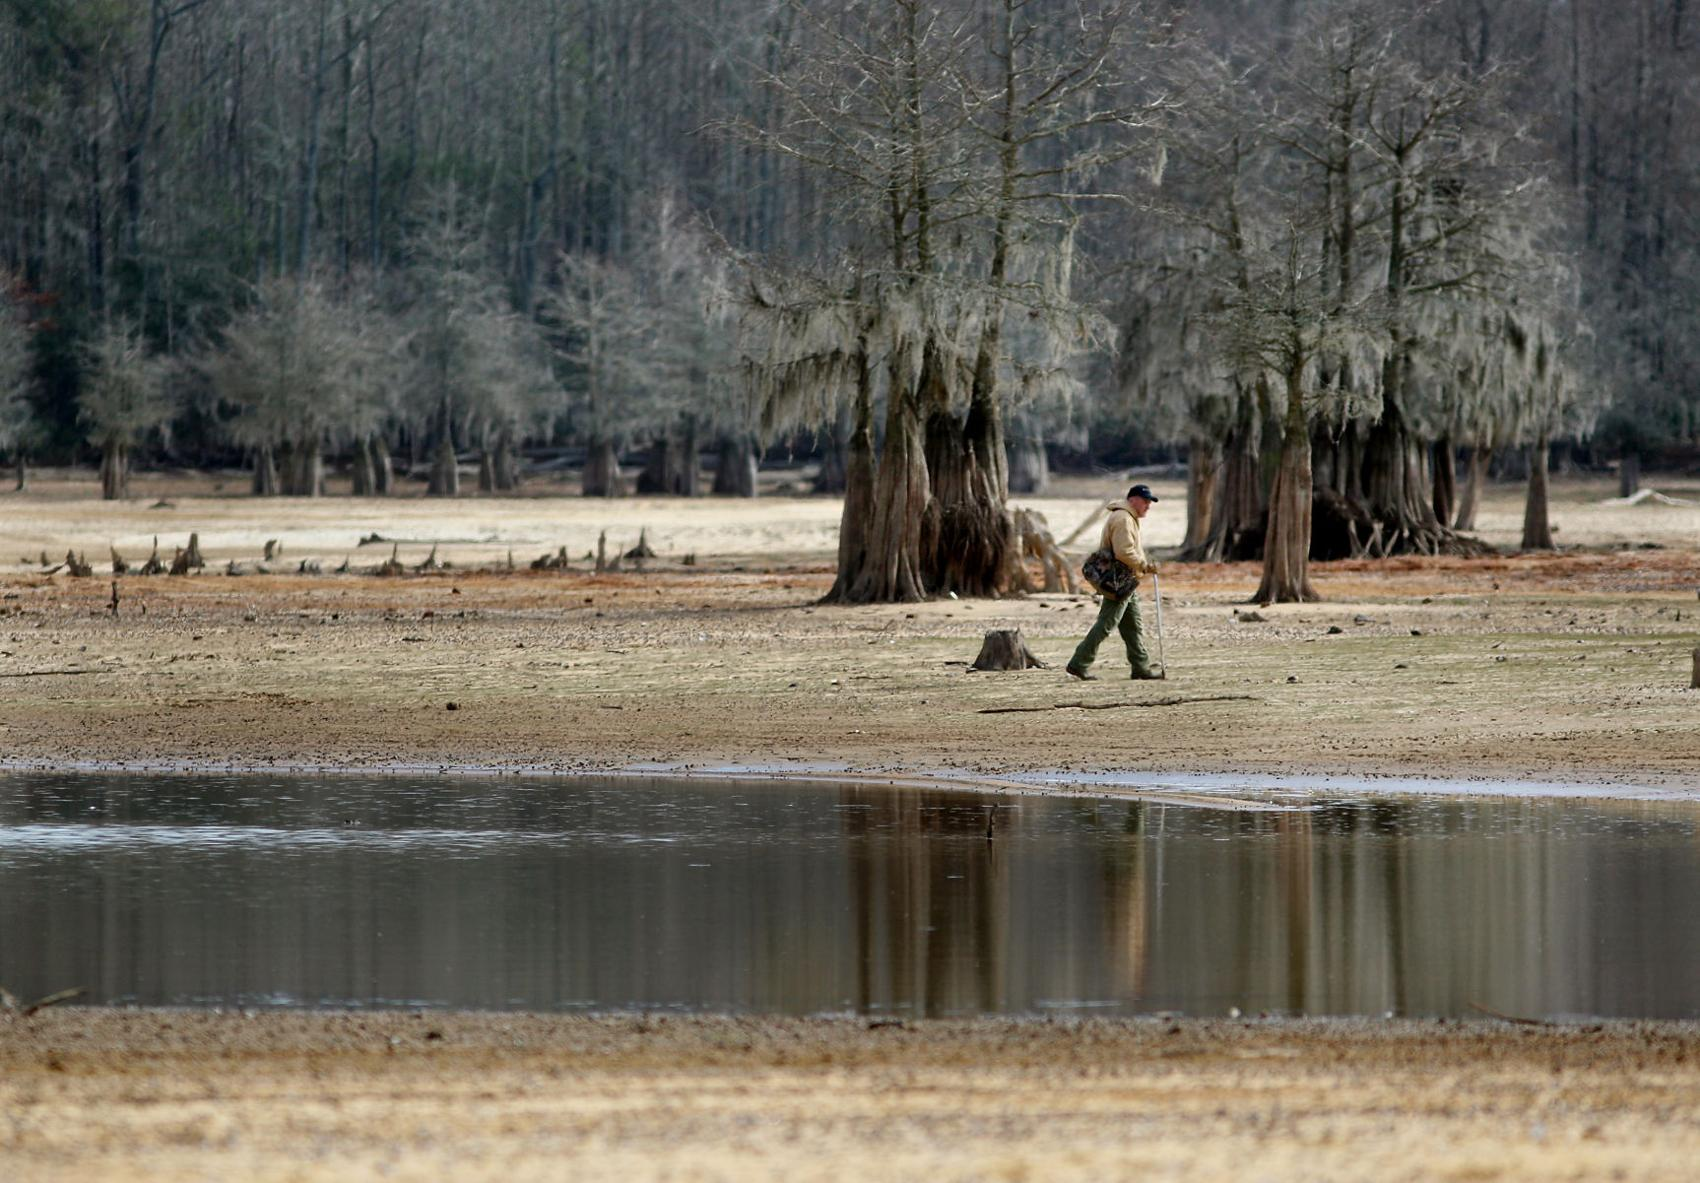 POST AND COURIER – Fifteen SC counties enter first drought stage after low rainfall